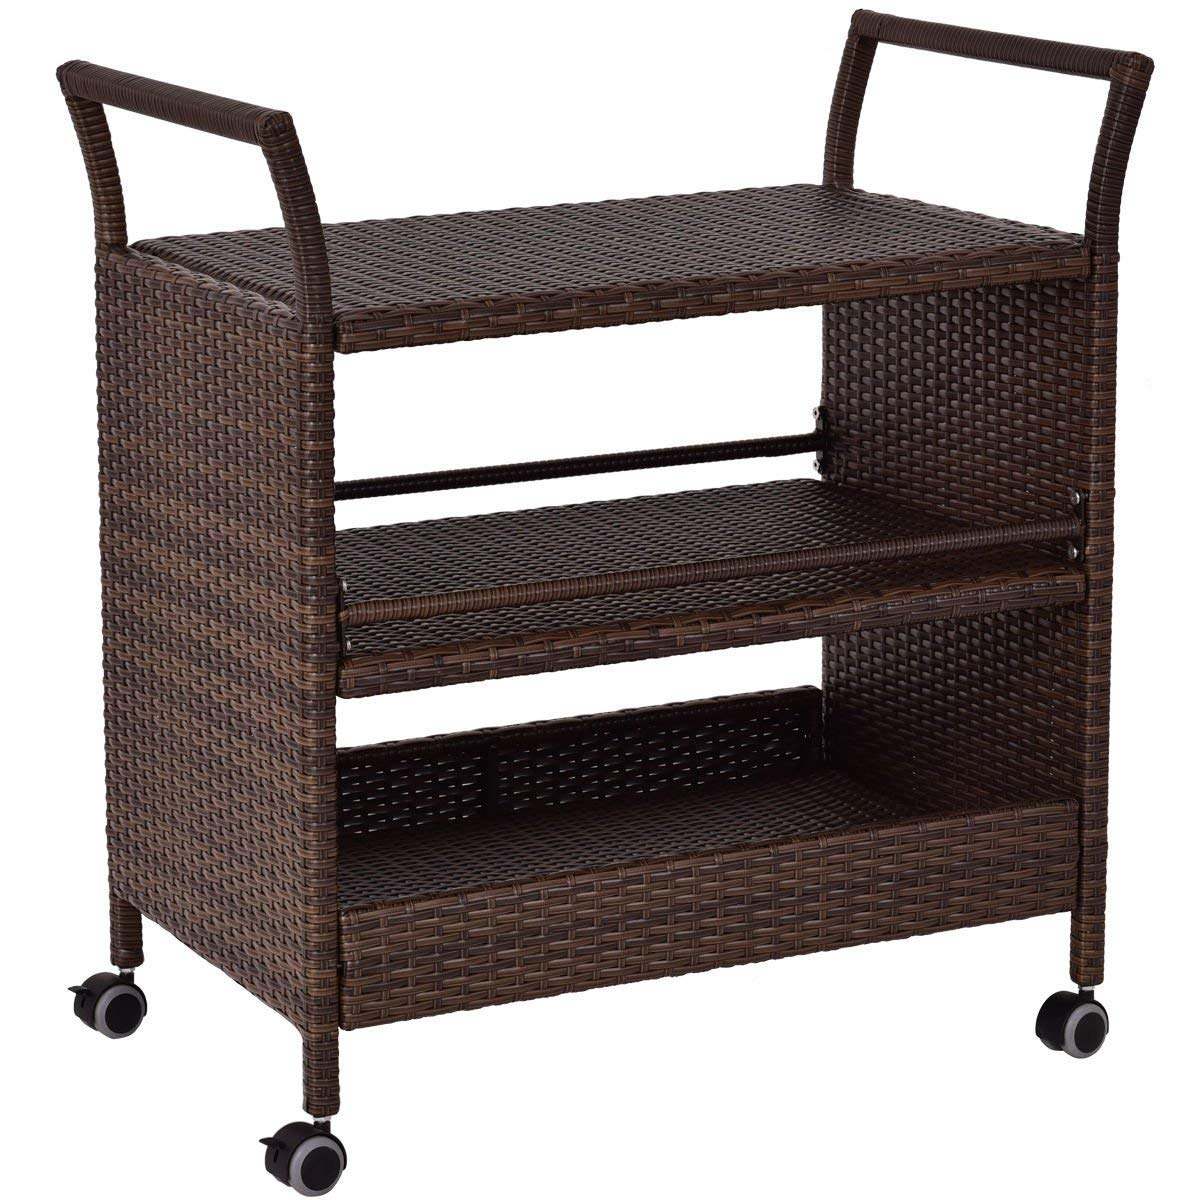 TANGKULA Patio Wicker Serving Cart Portable Rolling Wicker Bar Cart Kitchen Trolley Dining Storage Cart Storage Shelves Rack Indoor/Outdoor Furniture, Brown